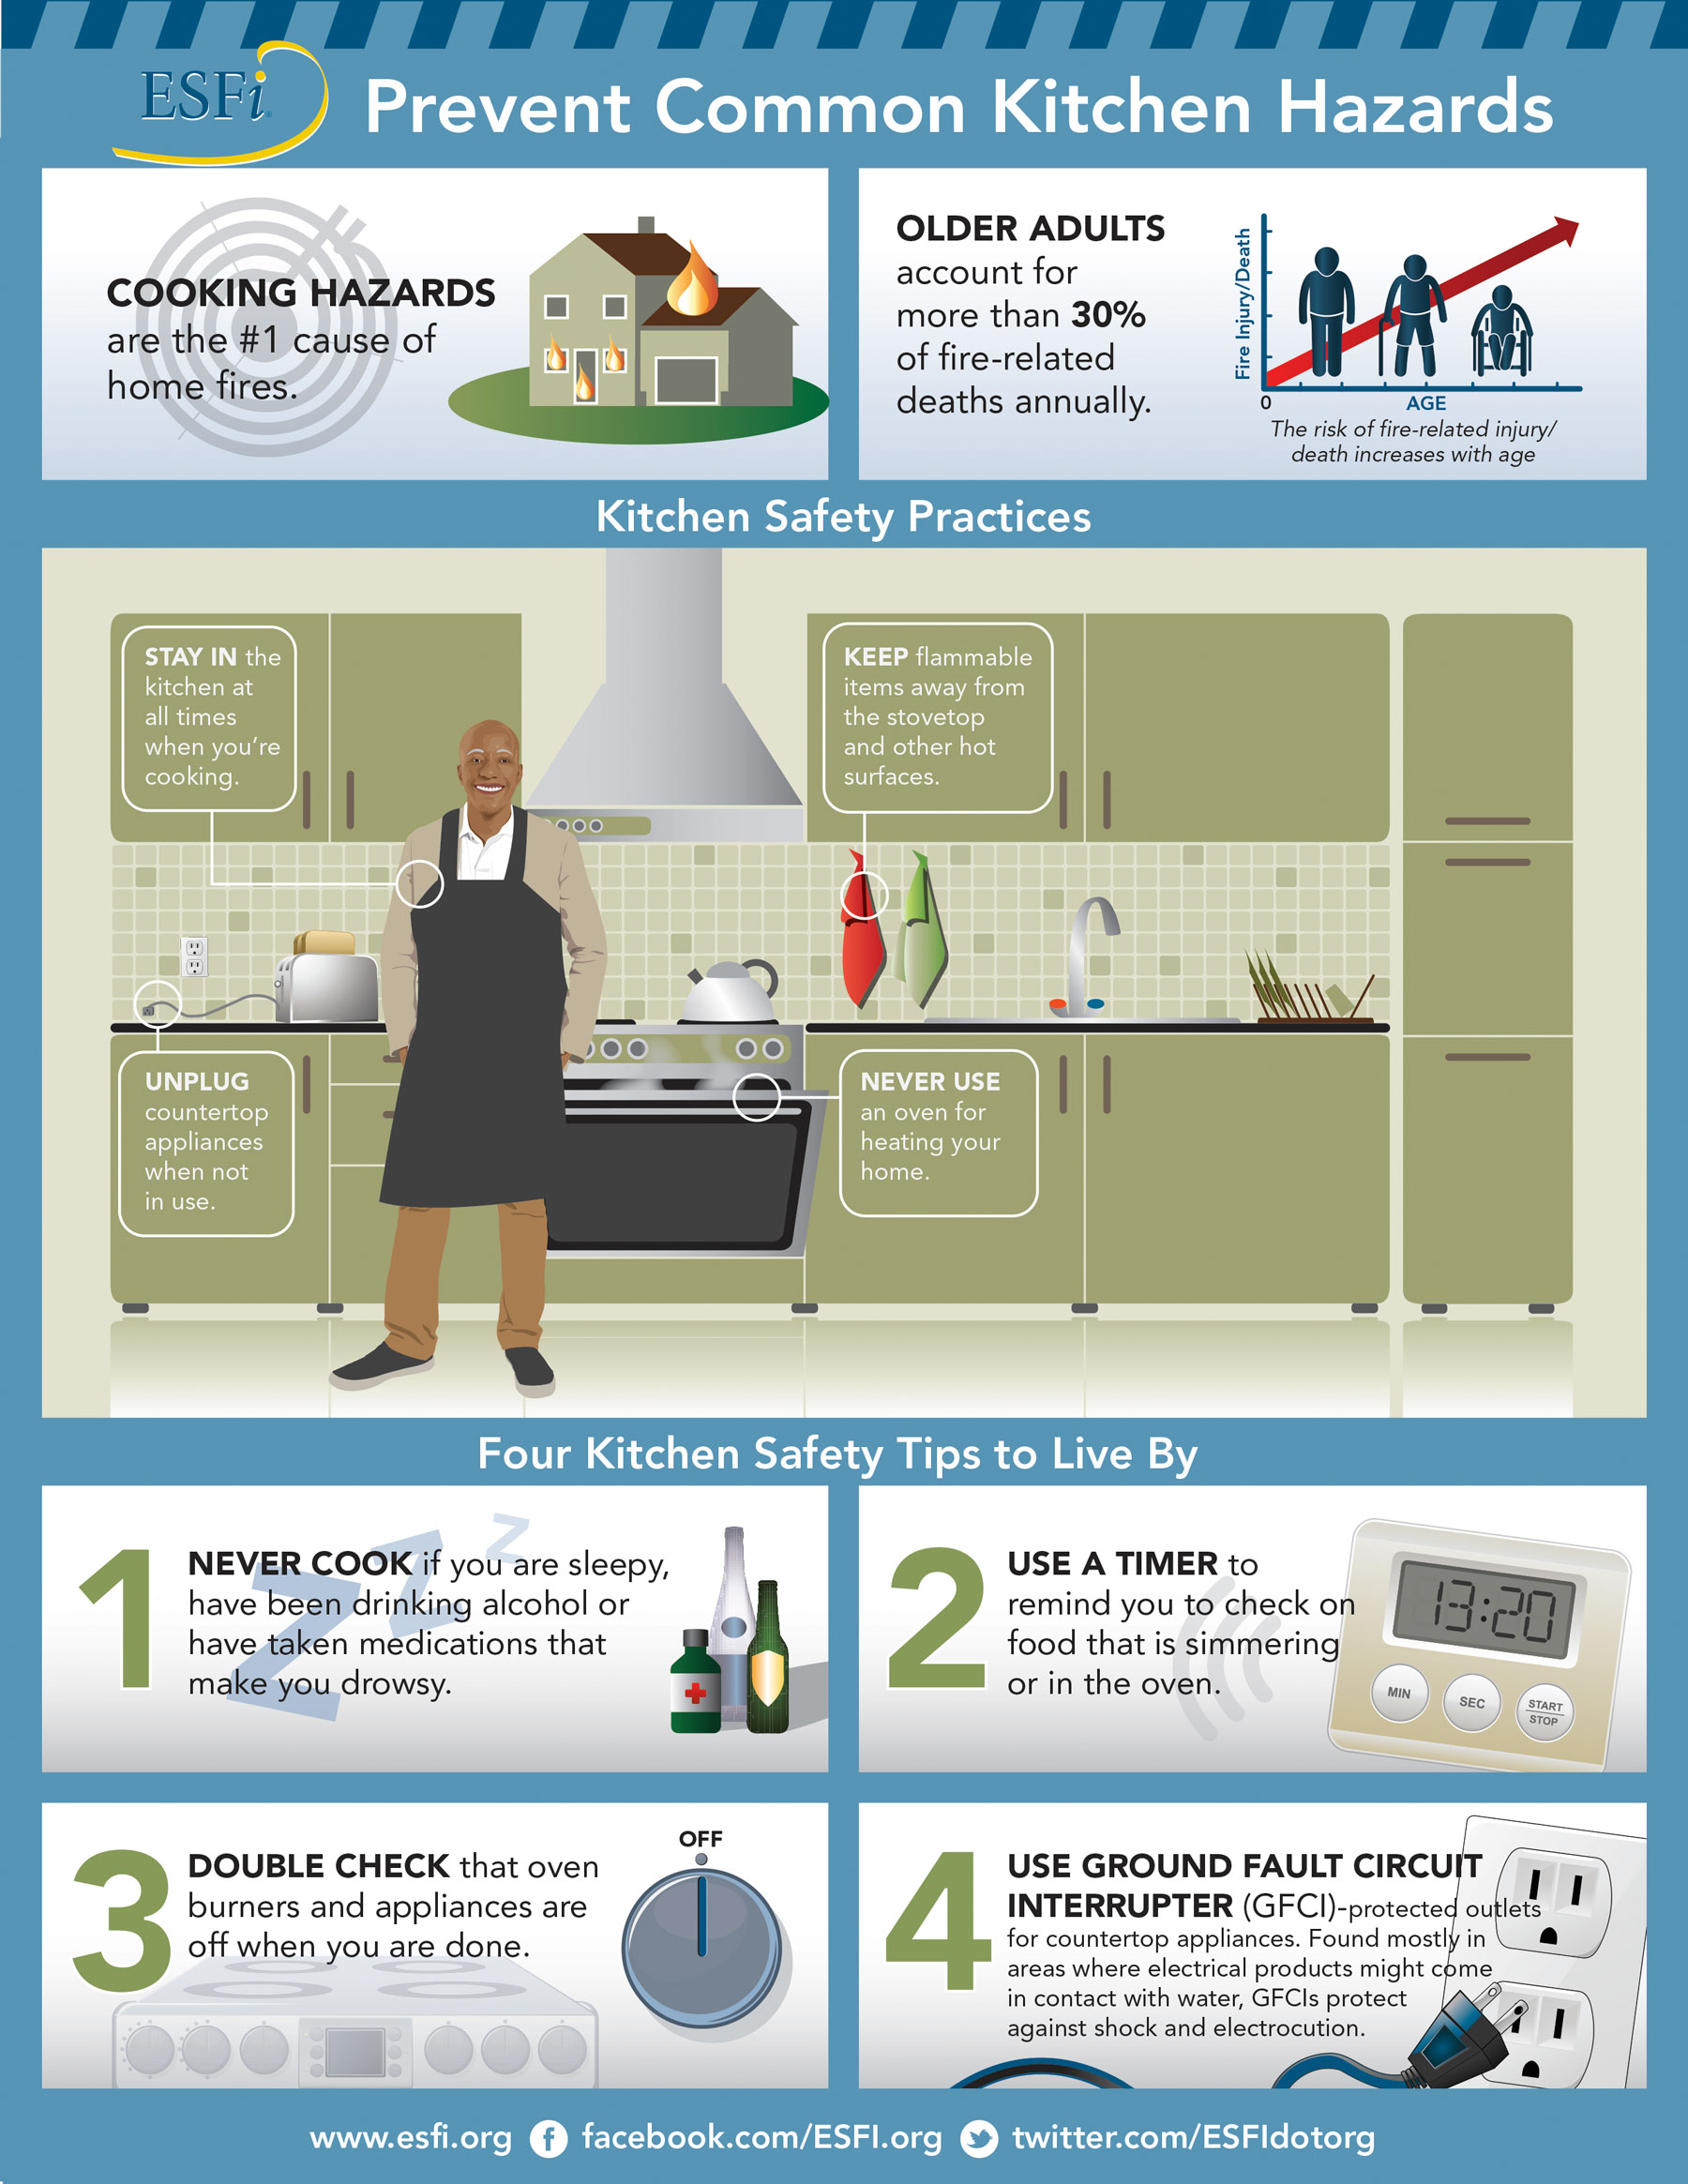 Holiday Cooking Safety Tips